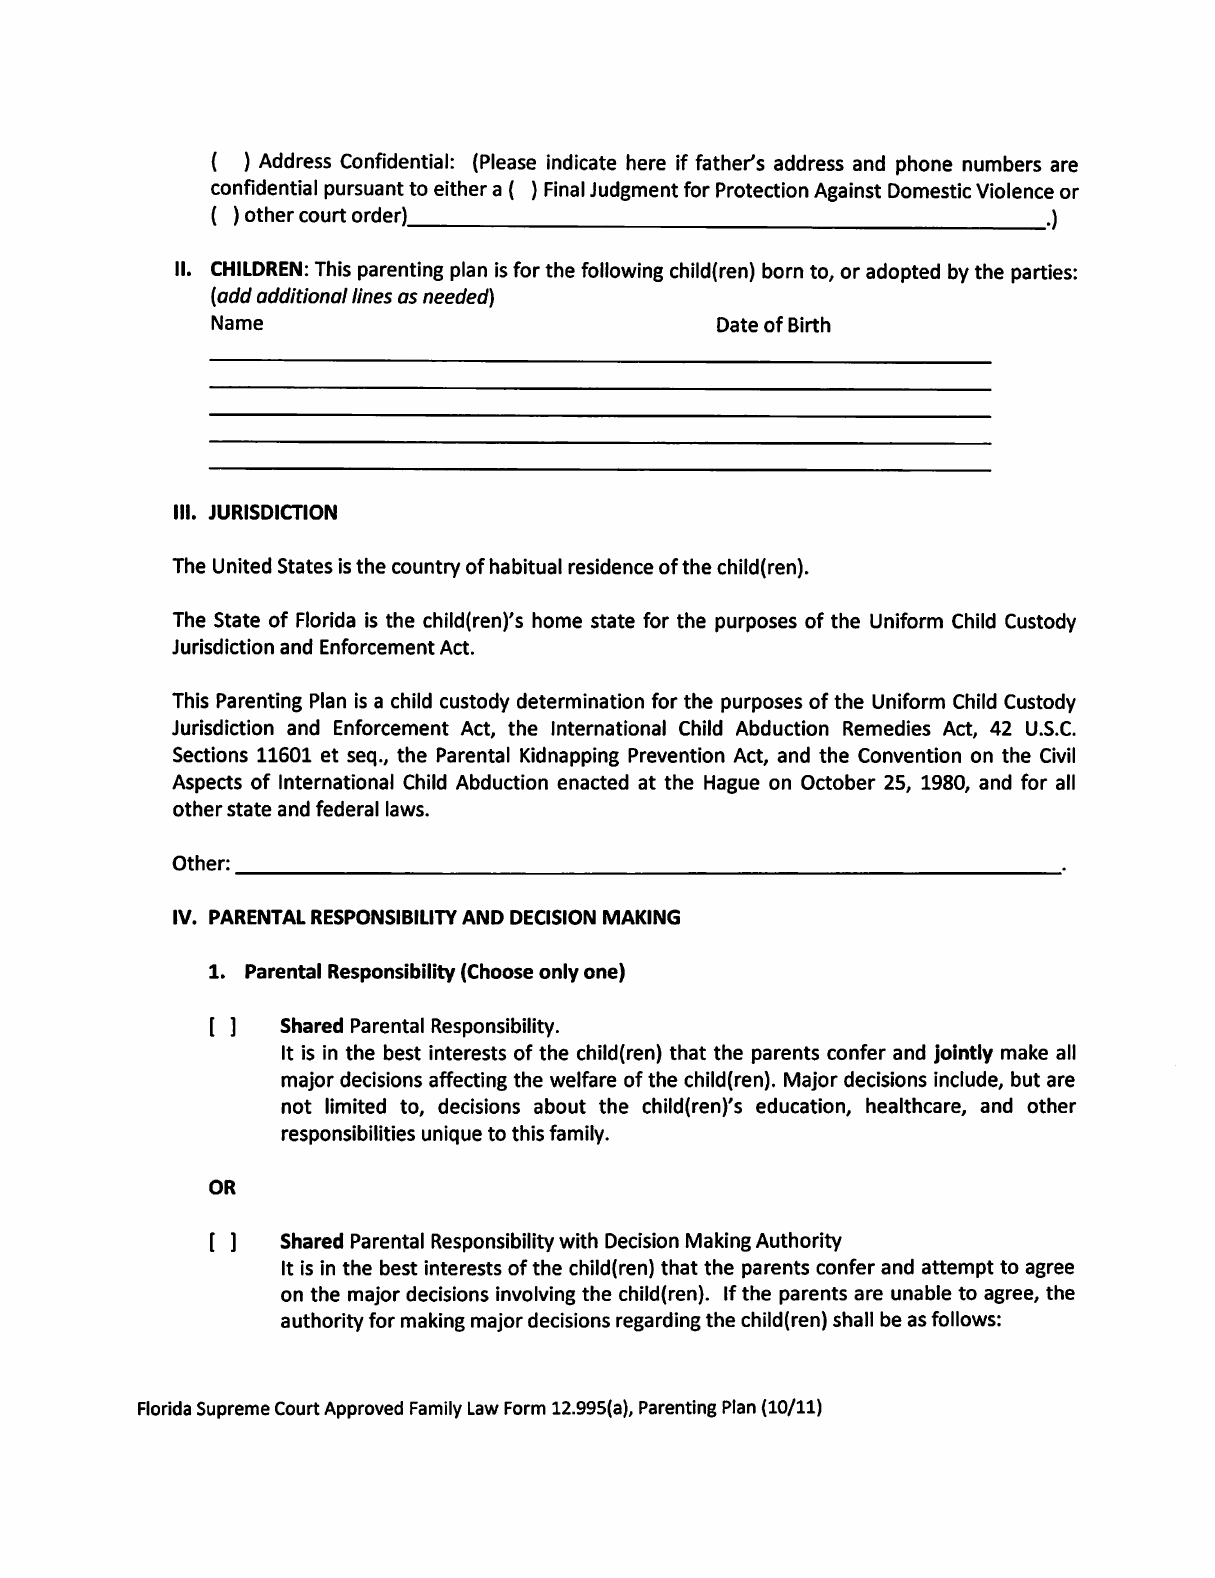 Sample Parenting Plan Template - Florida Free Download